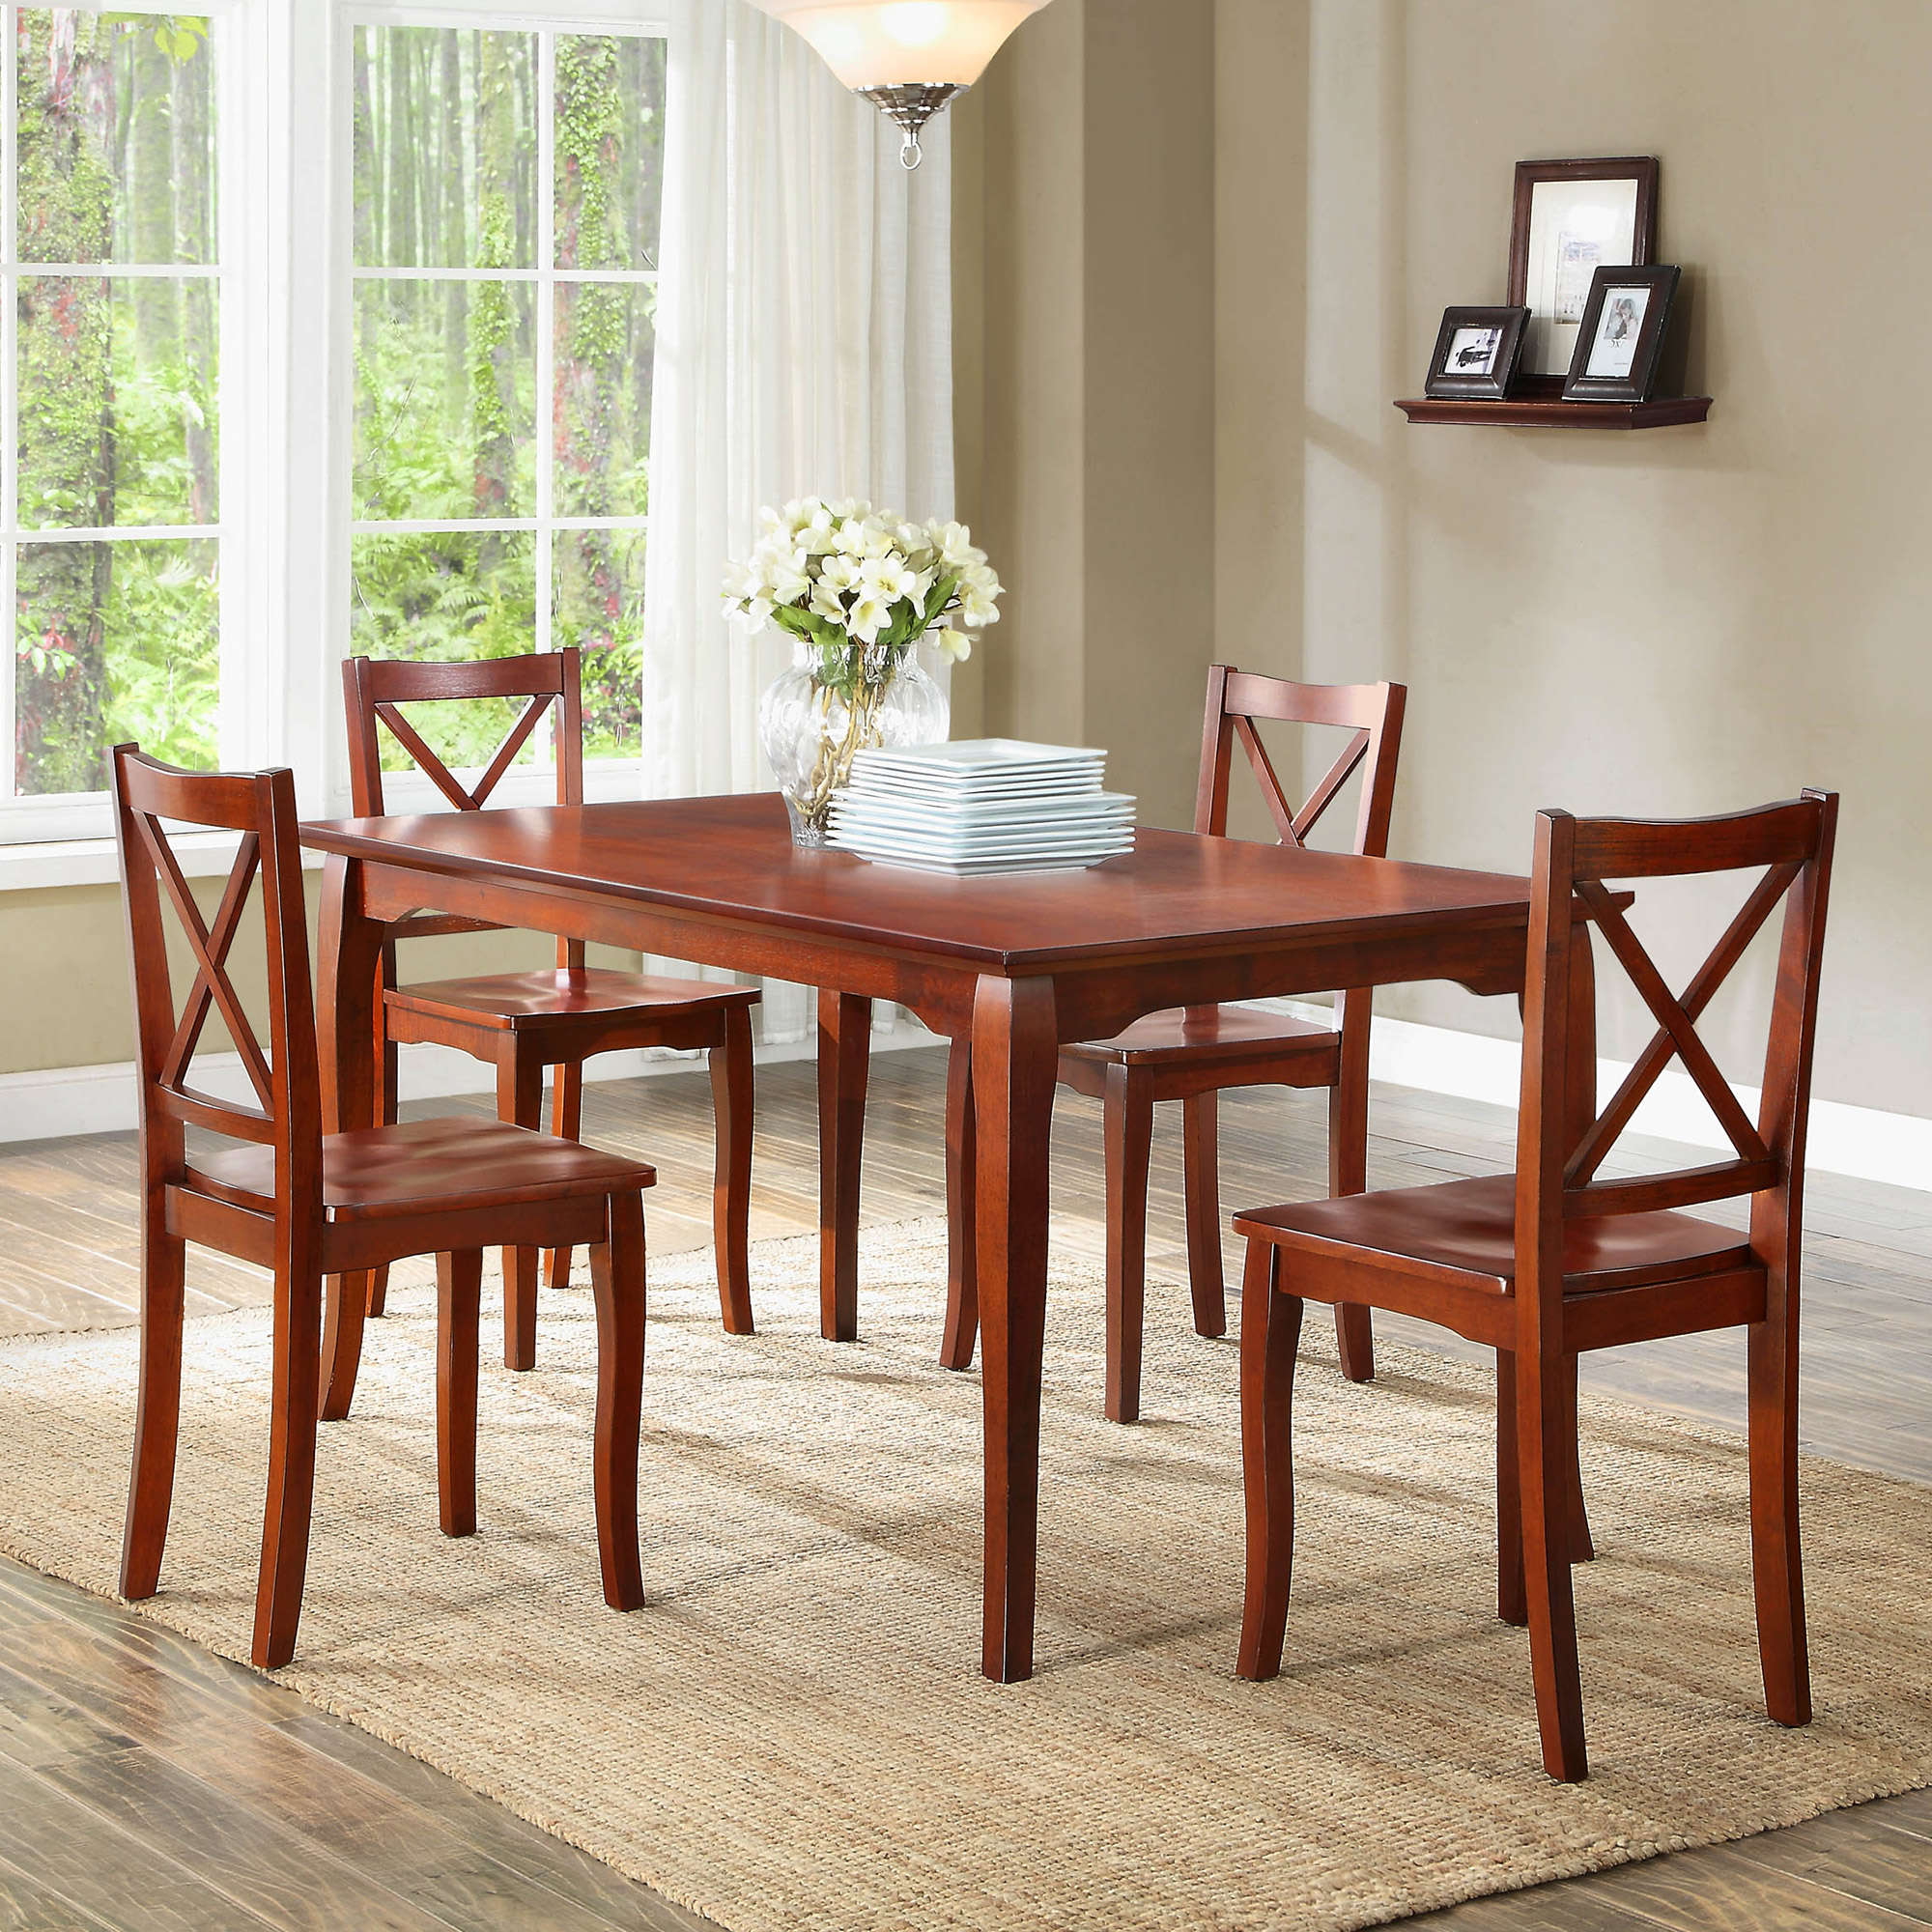 Cool Better Homes and Gardens Ashwood Road Piece Dining Set Brown Cherry Walmart